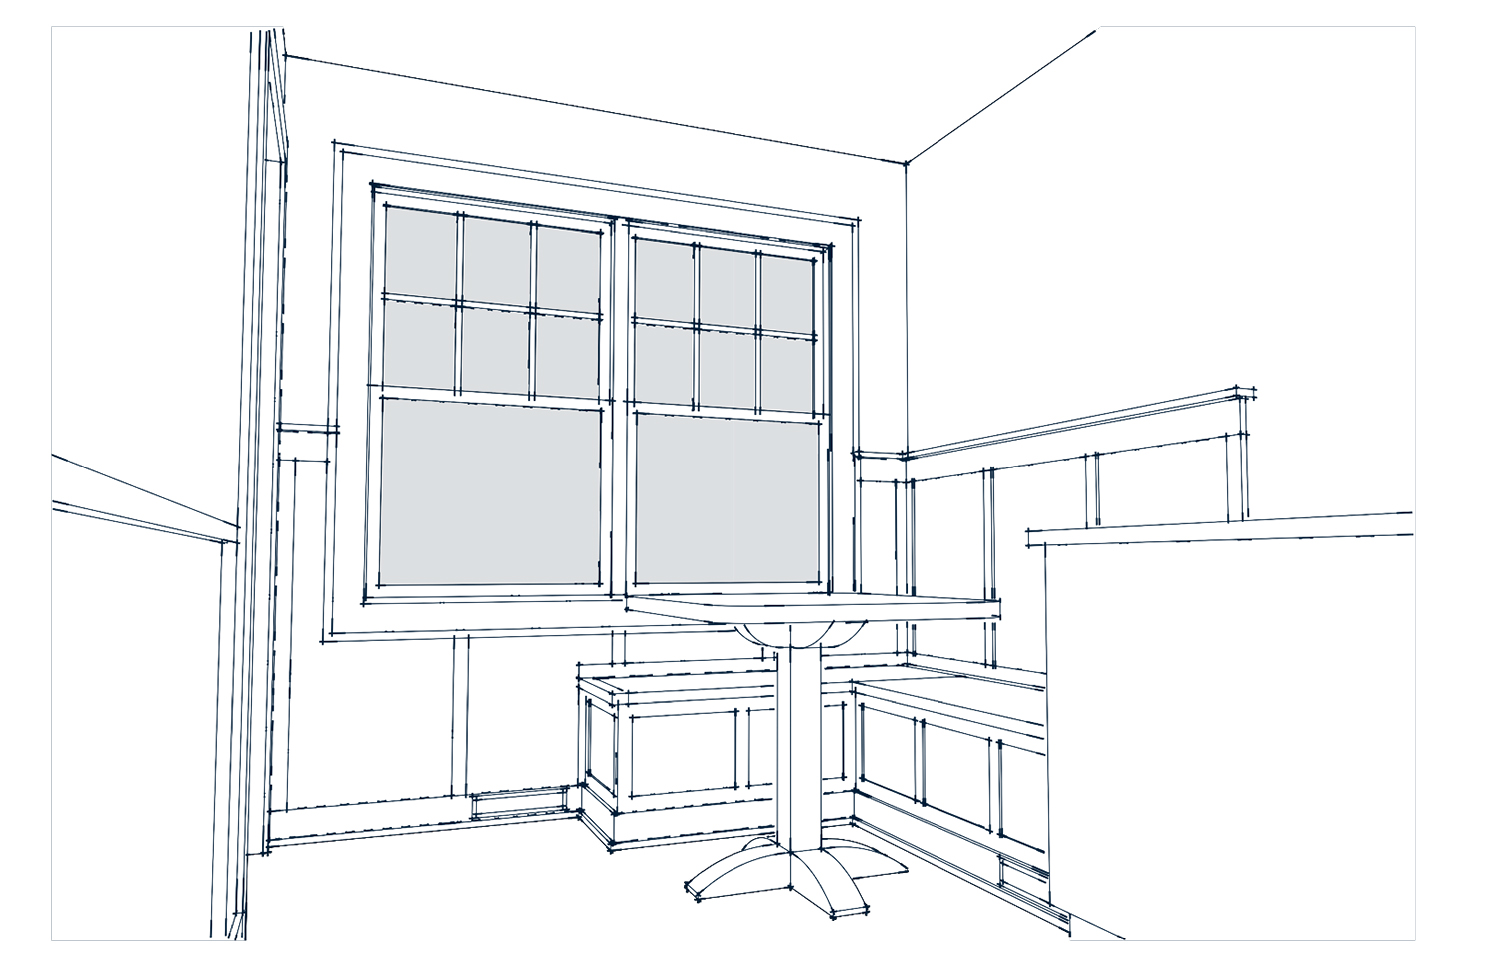 2_sketch_perspectiveview_2.jpg